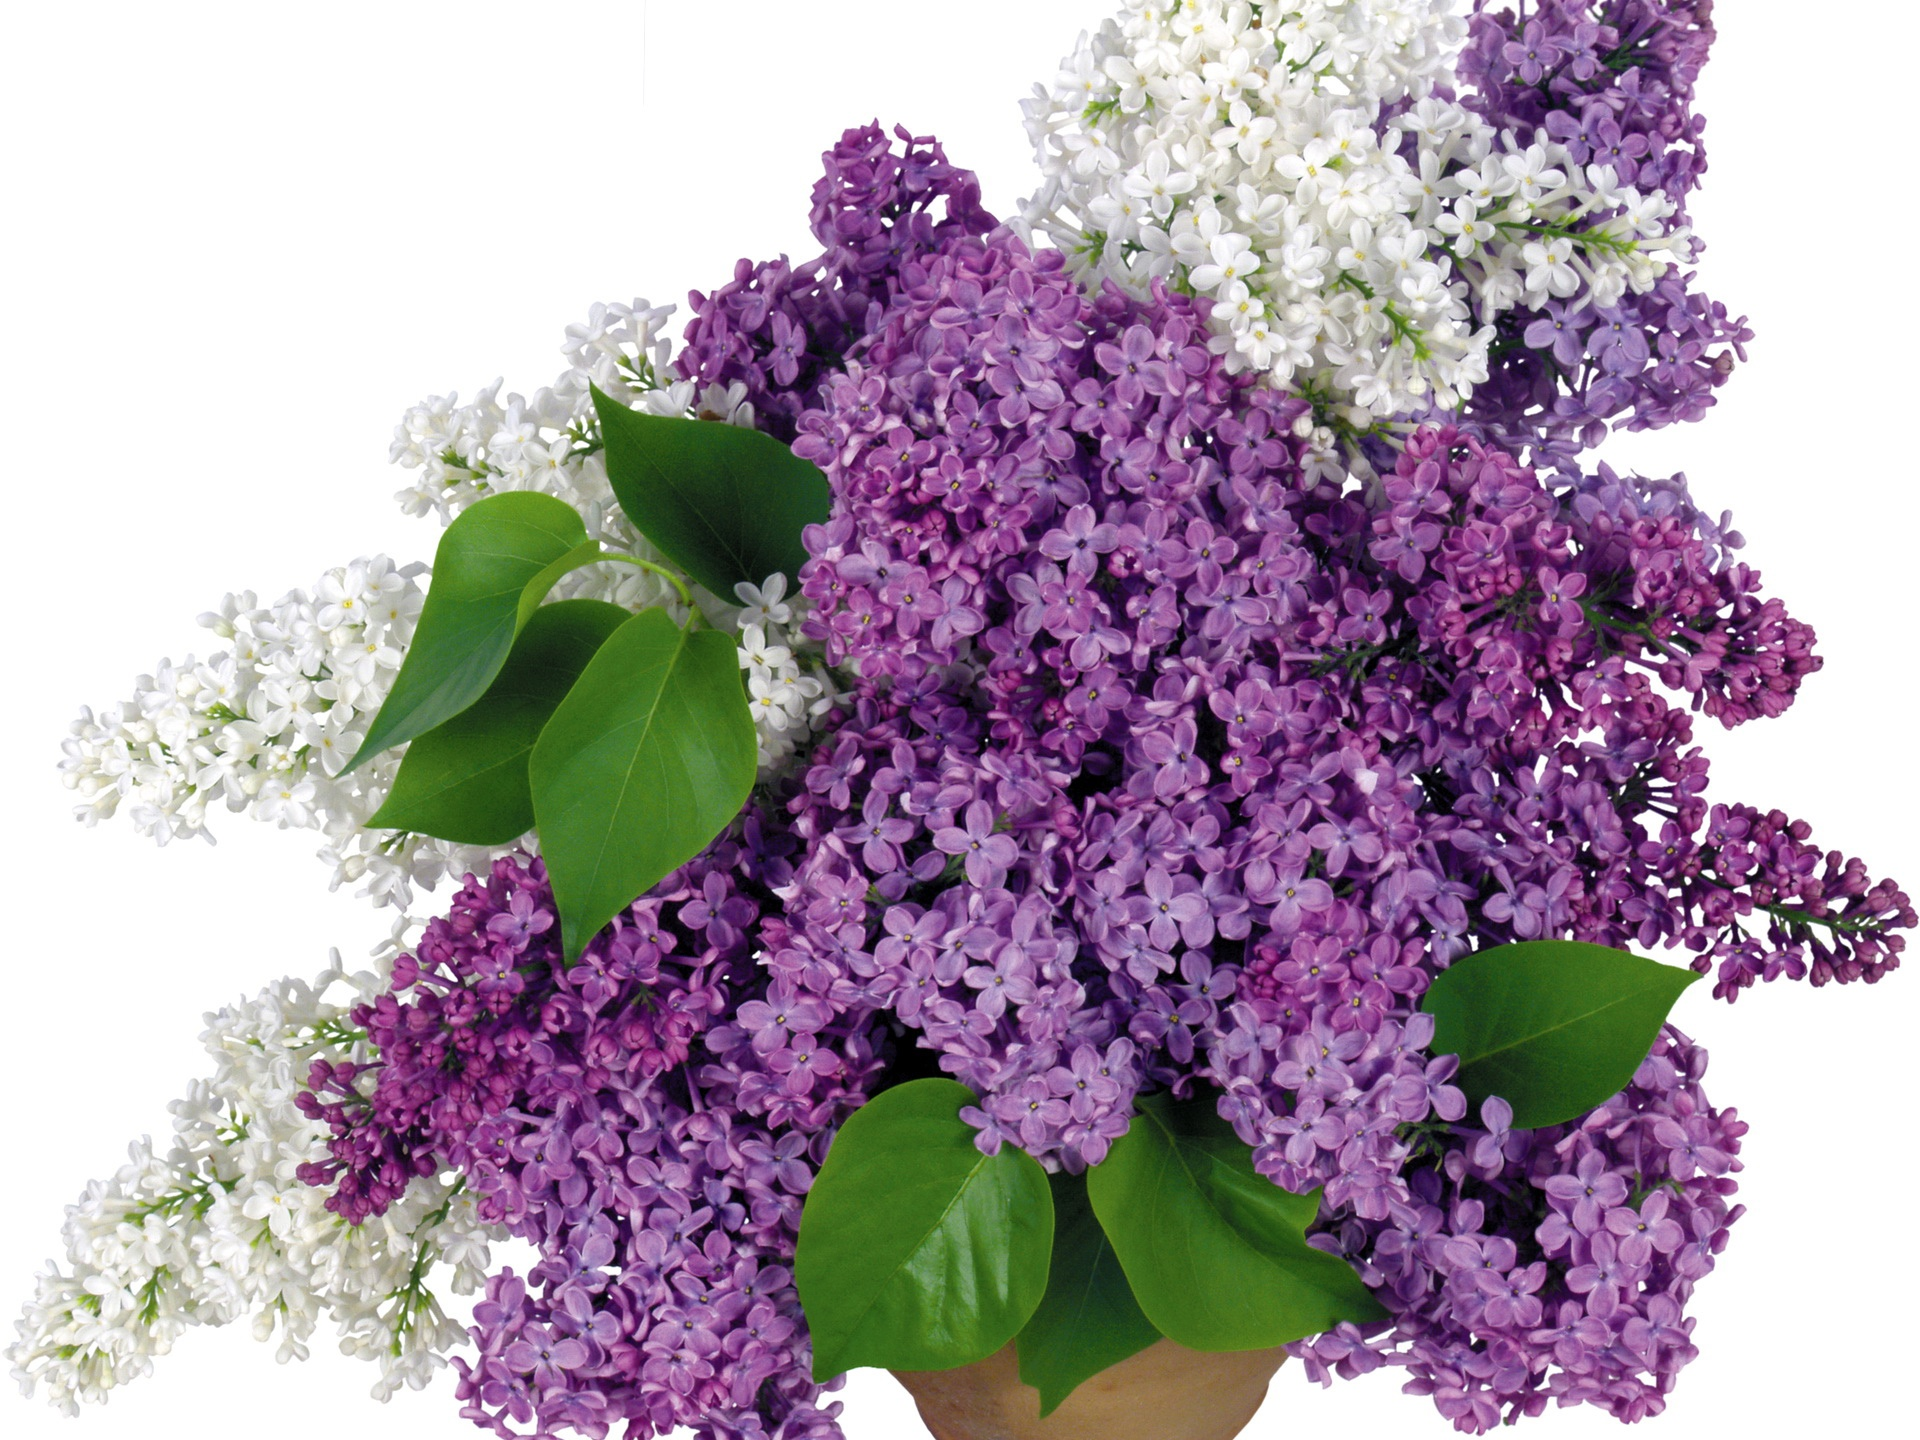 lilac flower wallpaper jpg - photo #19